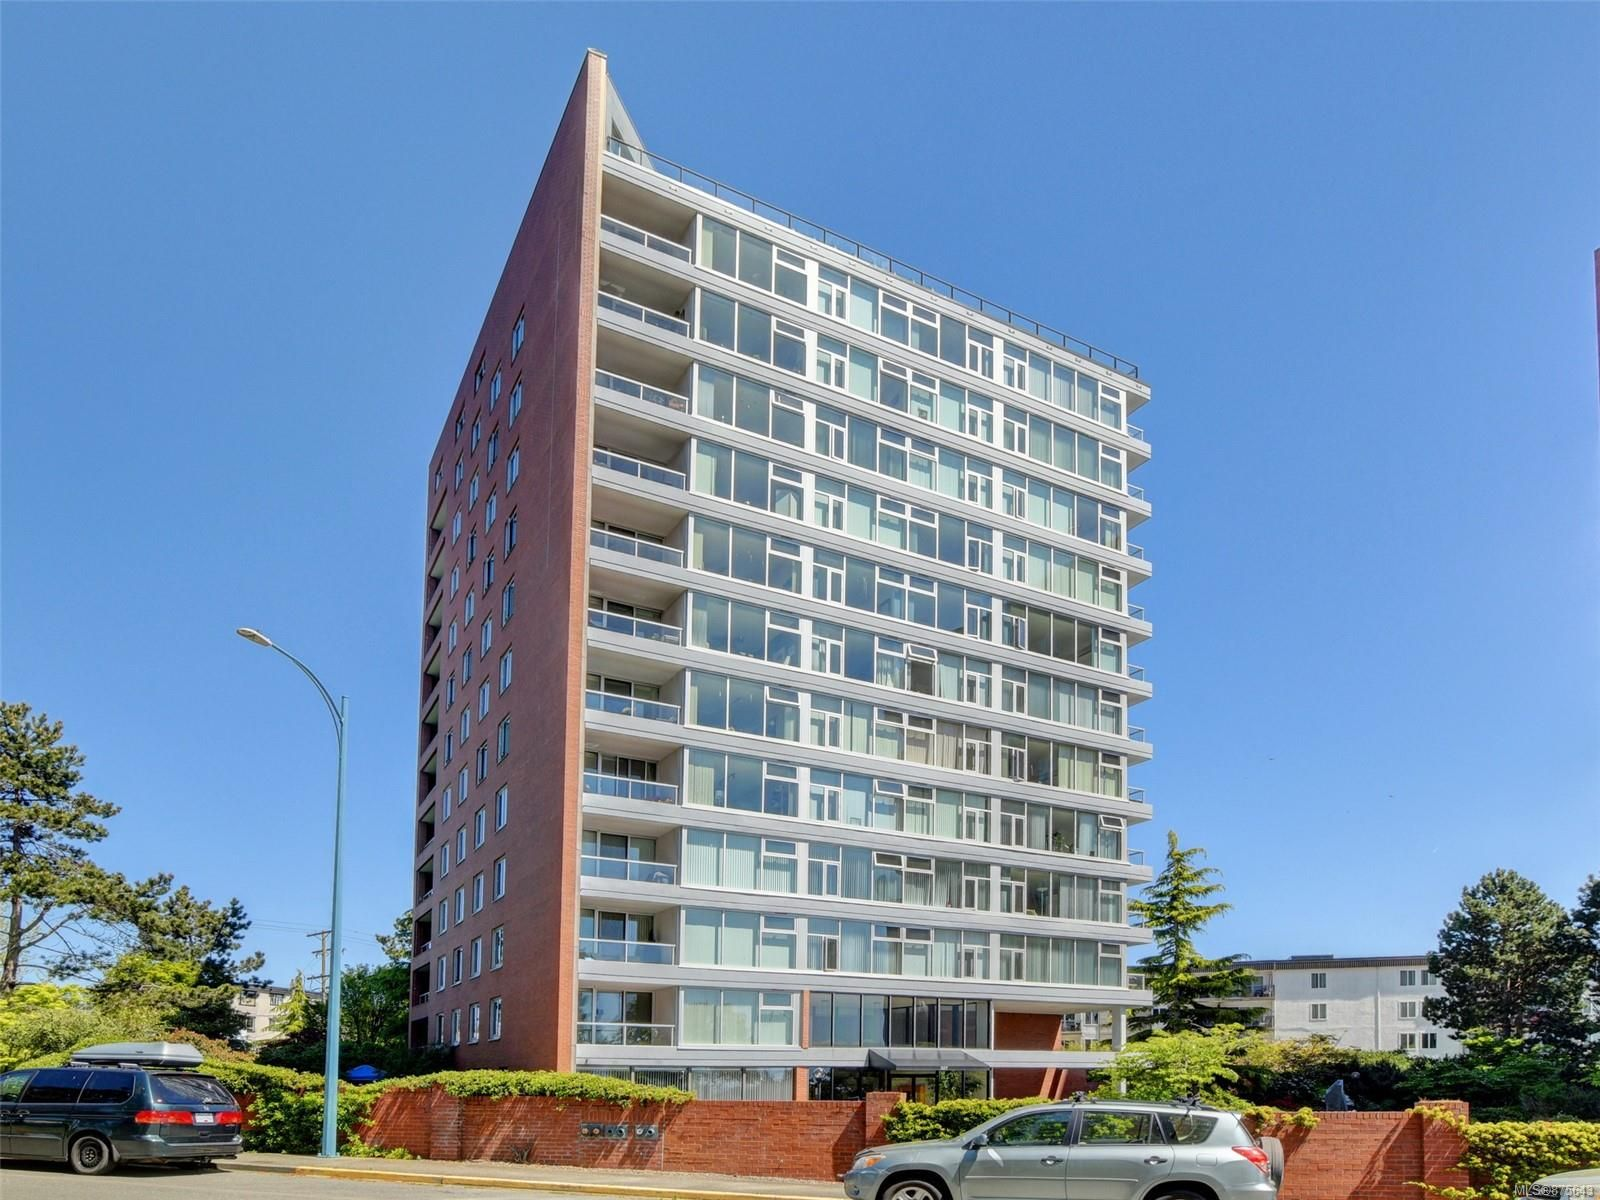 Main Photo: 703 327 Maitland St in : VW Victoria West Condo for sale (Victoria West)  : MLS®# 875643